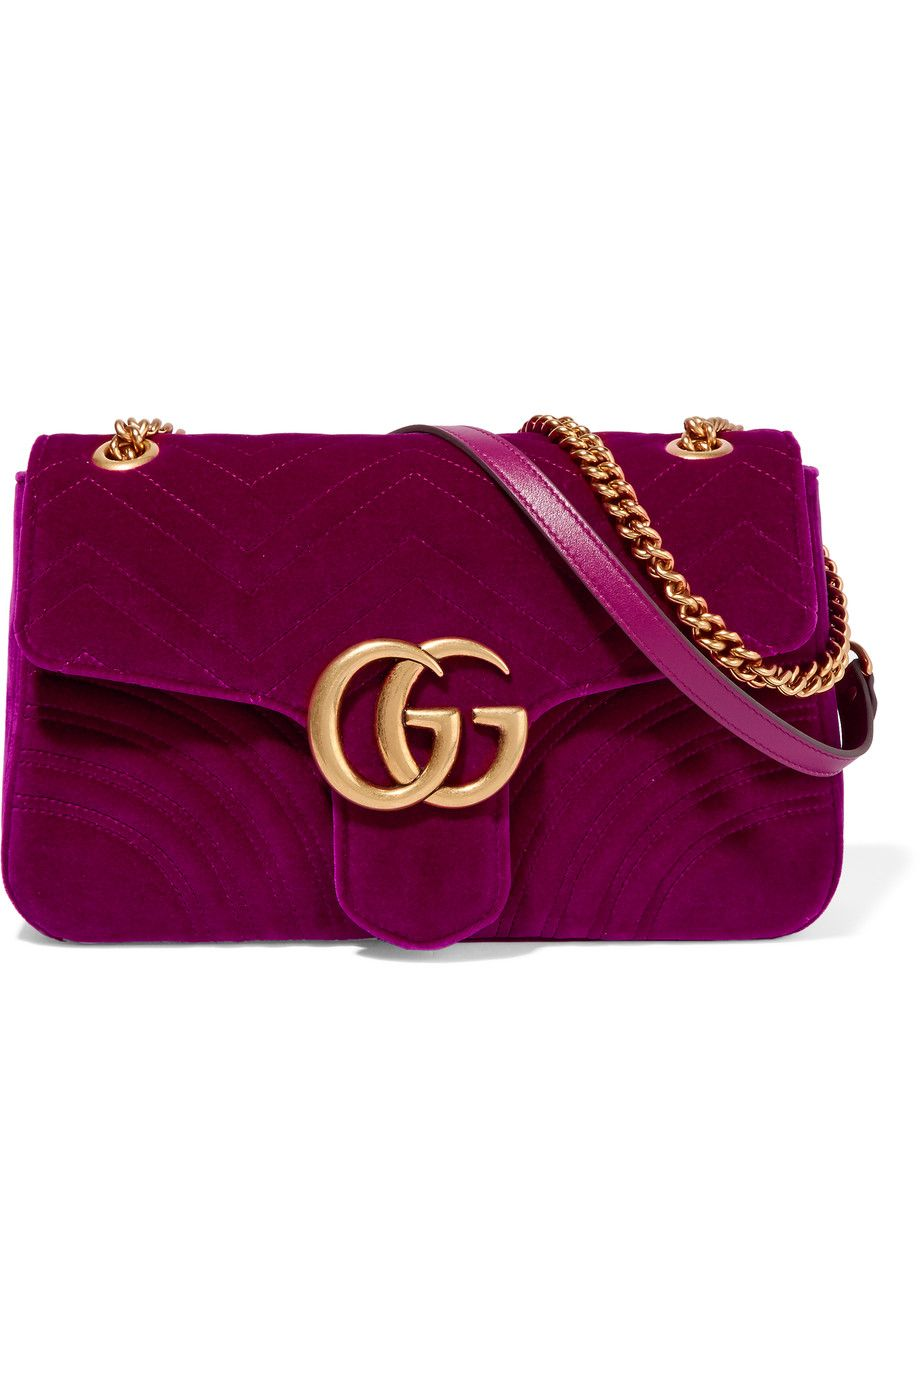 Leather quilted handbags and purses - Gucci Gg Marmont Medium Quilted Velvet Shoulder Bag Plum Velvet And Leather Push Lock Fastening